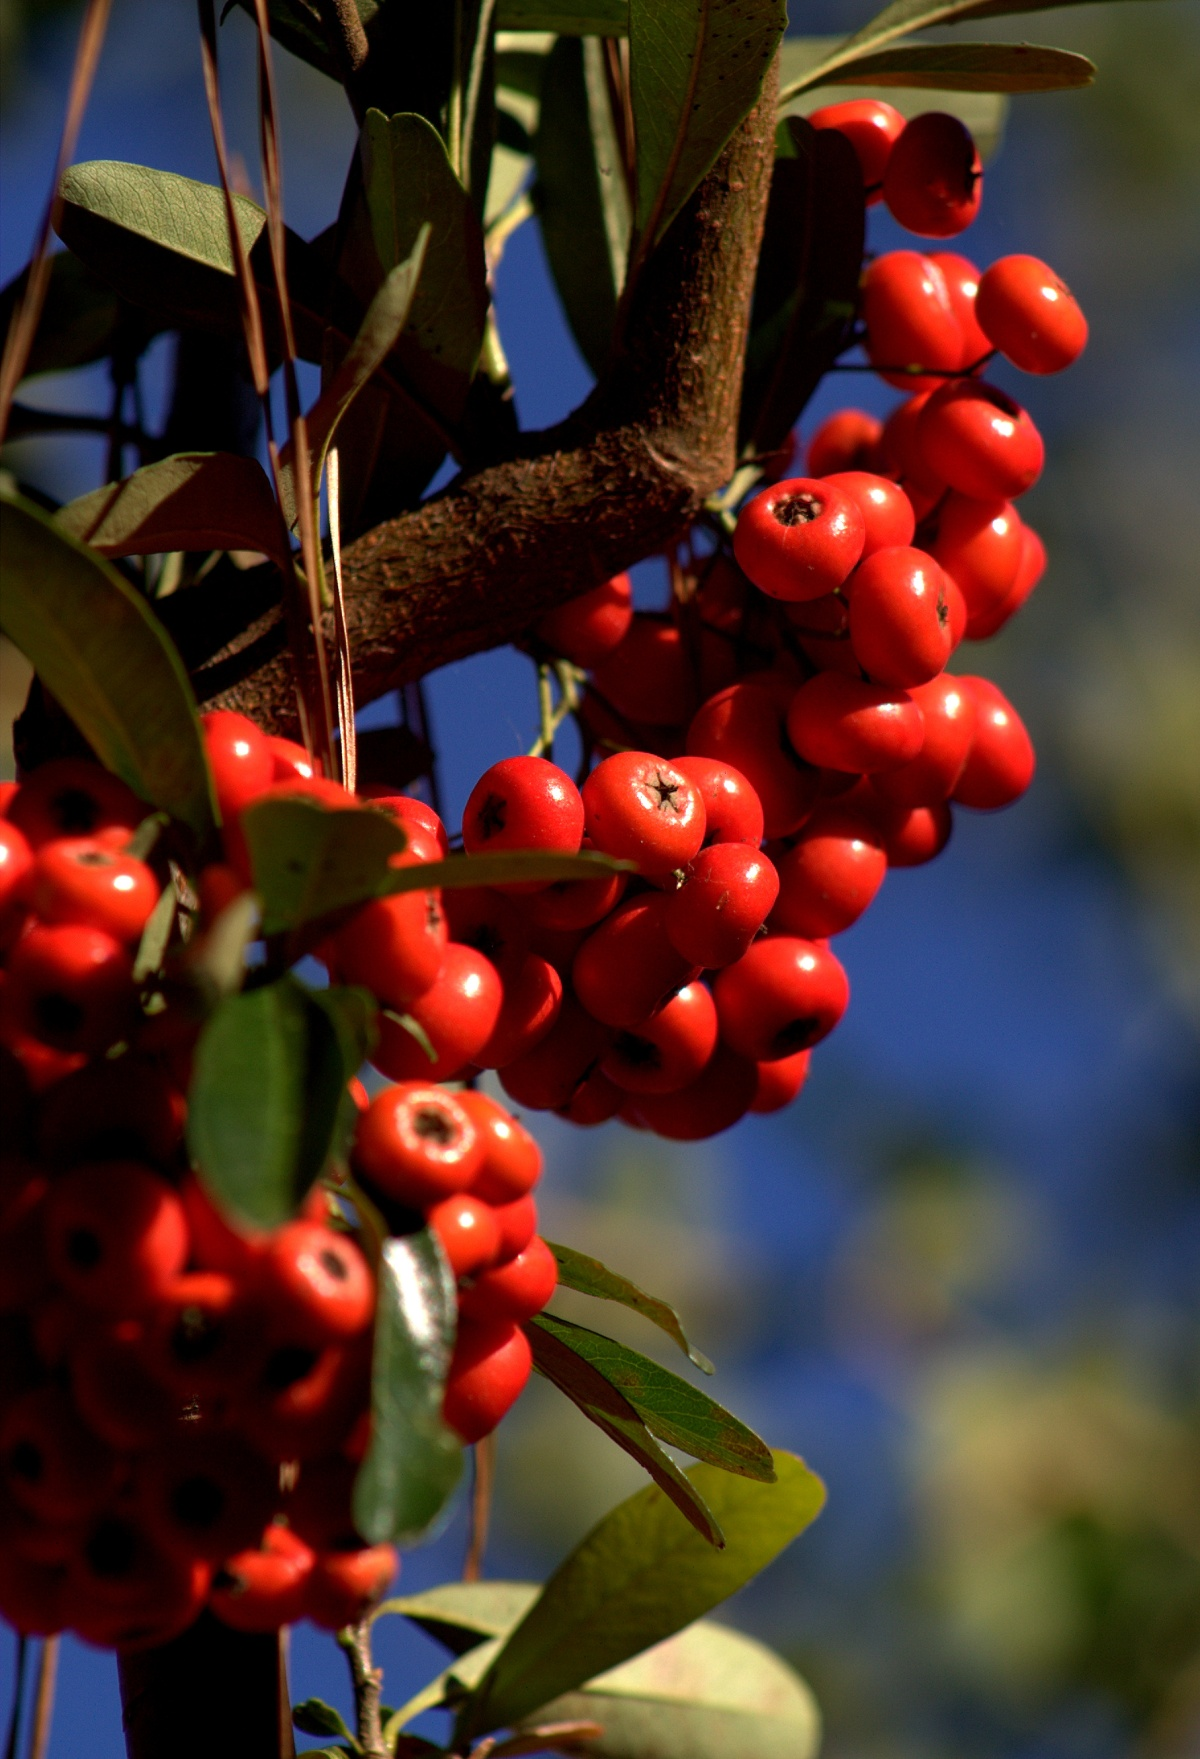 Shrubbery ~ Firethorn/Pyracantha Berries, 10/25